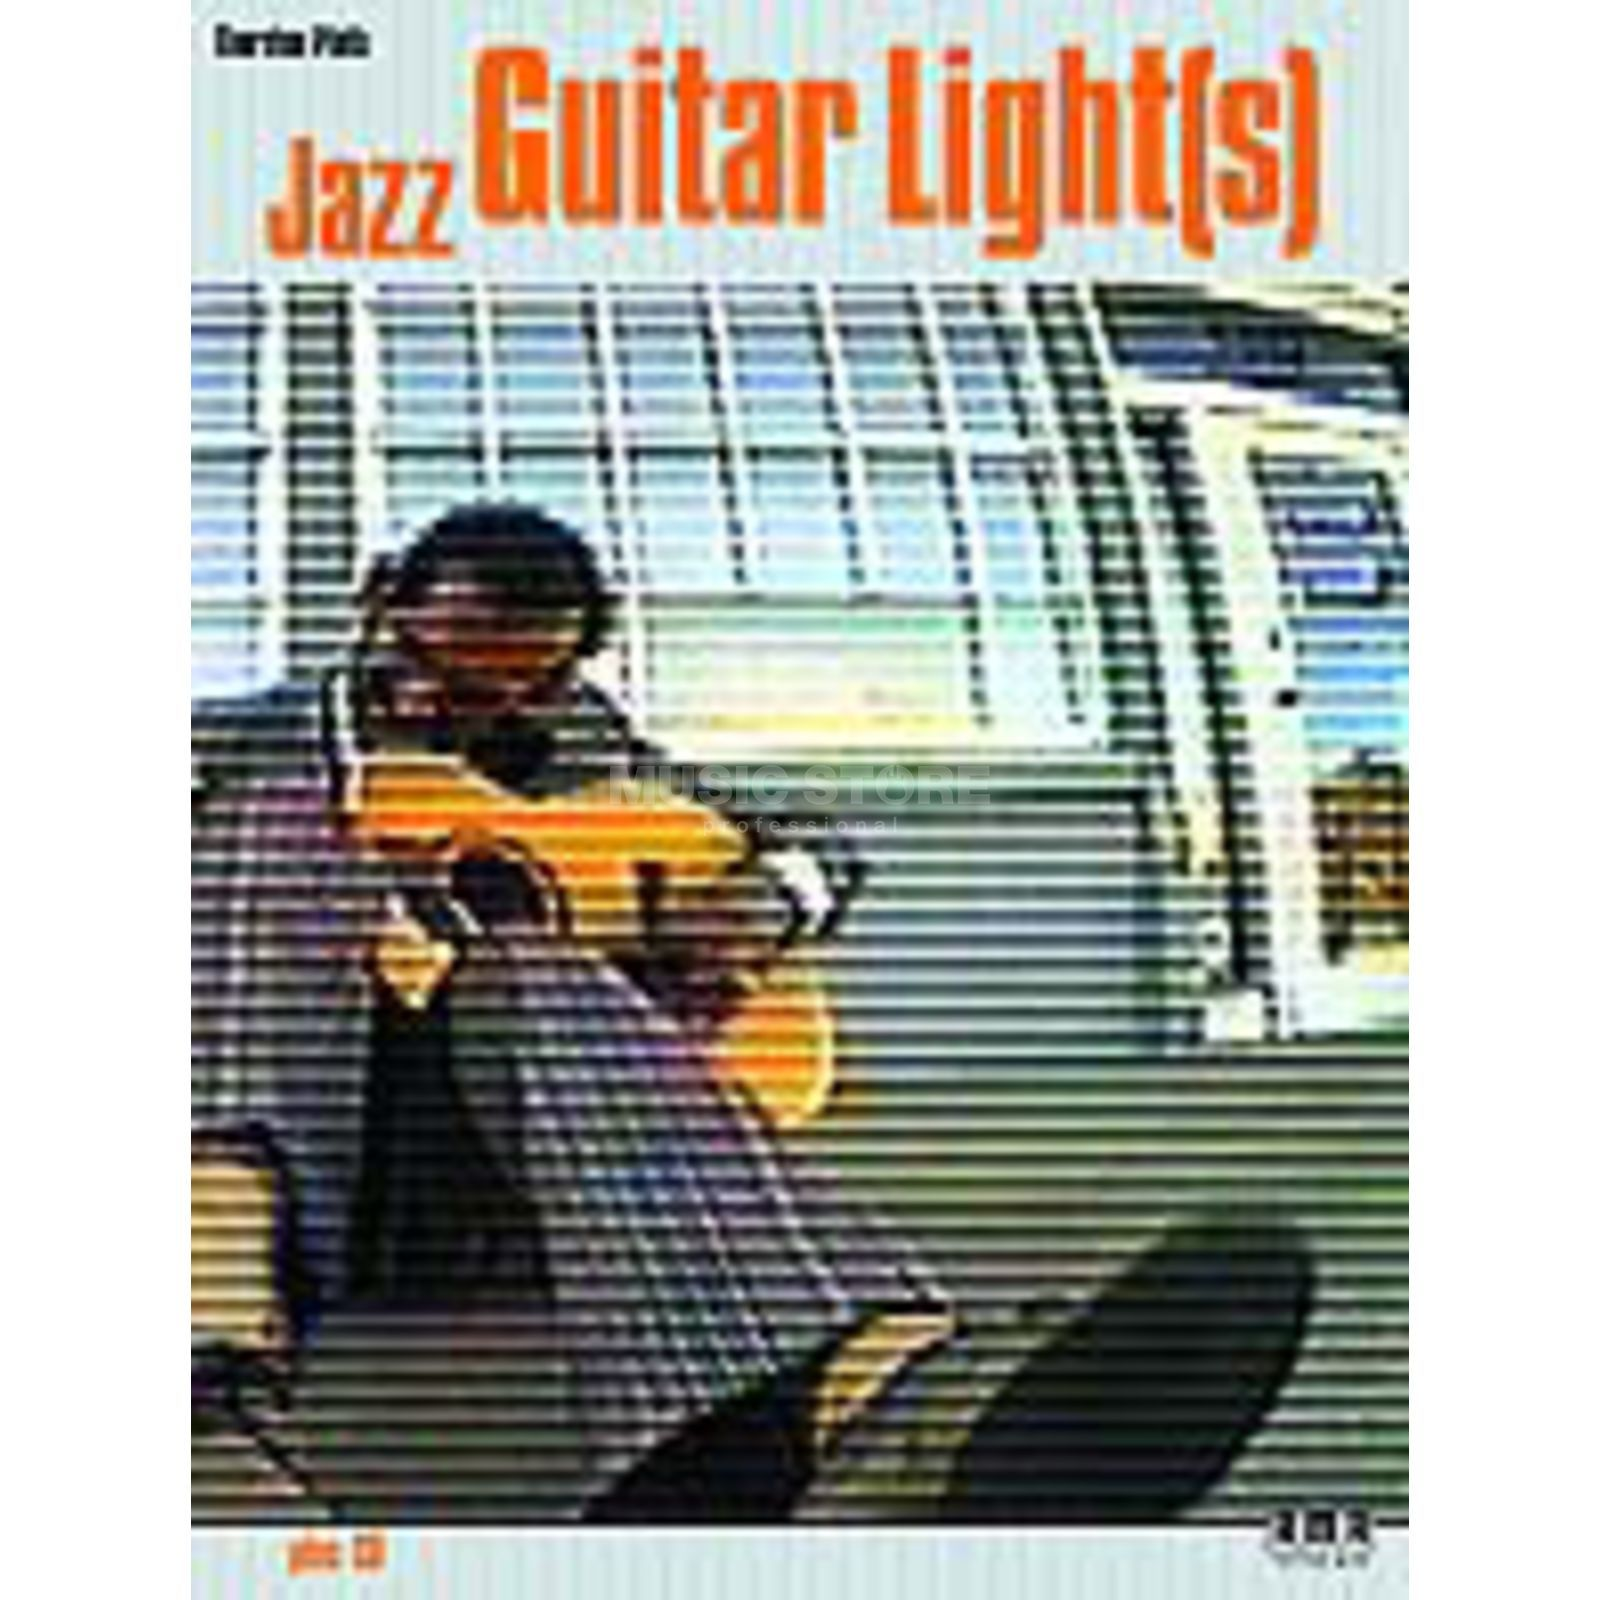 AMA Verlag Jazz Guitar Light  Thorsten Plath,inkl. CD Produktbild